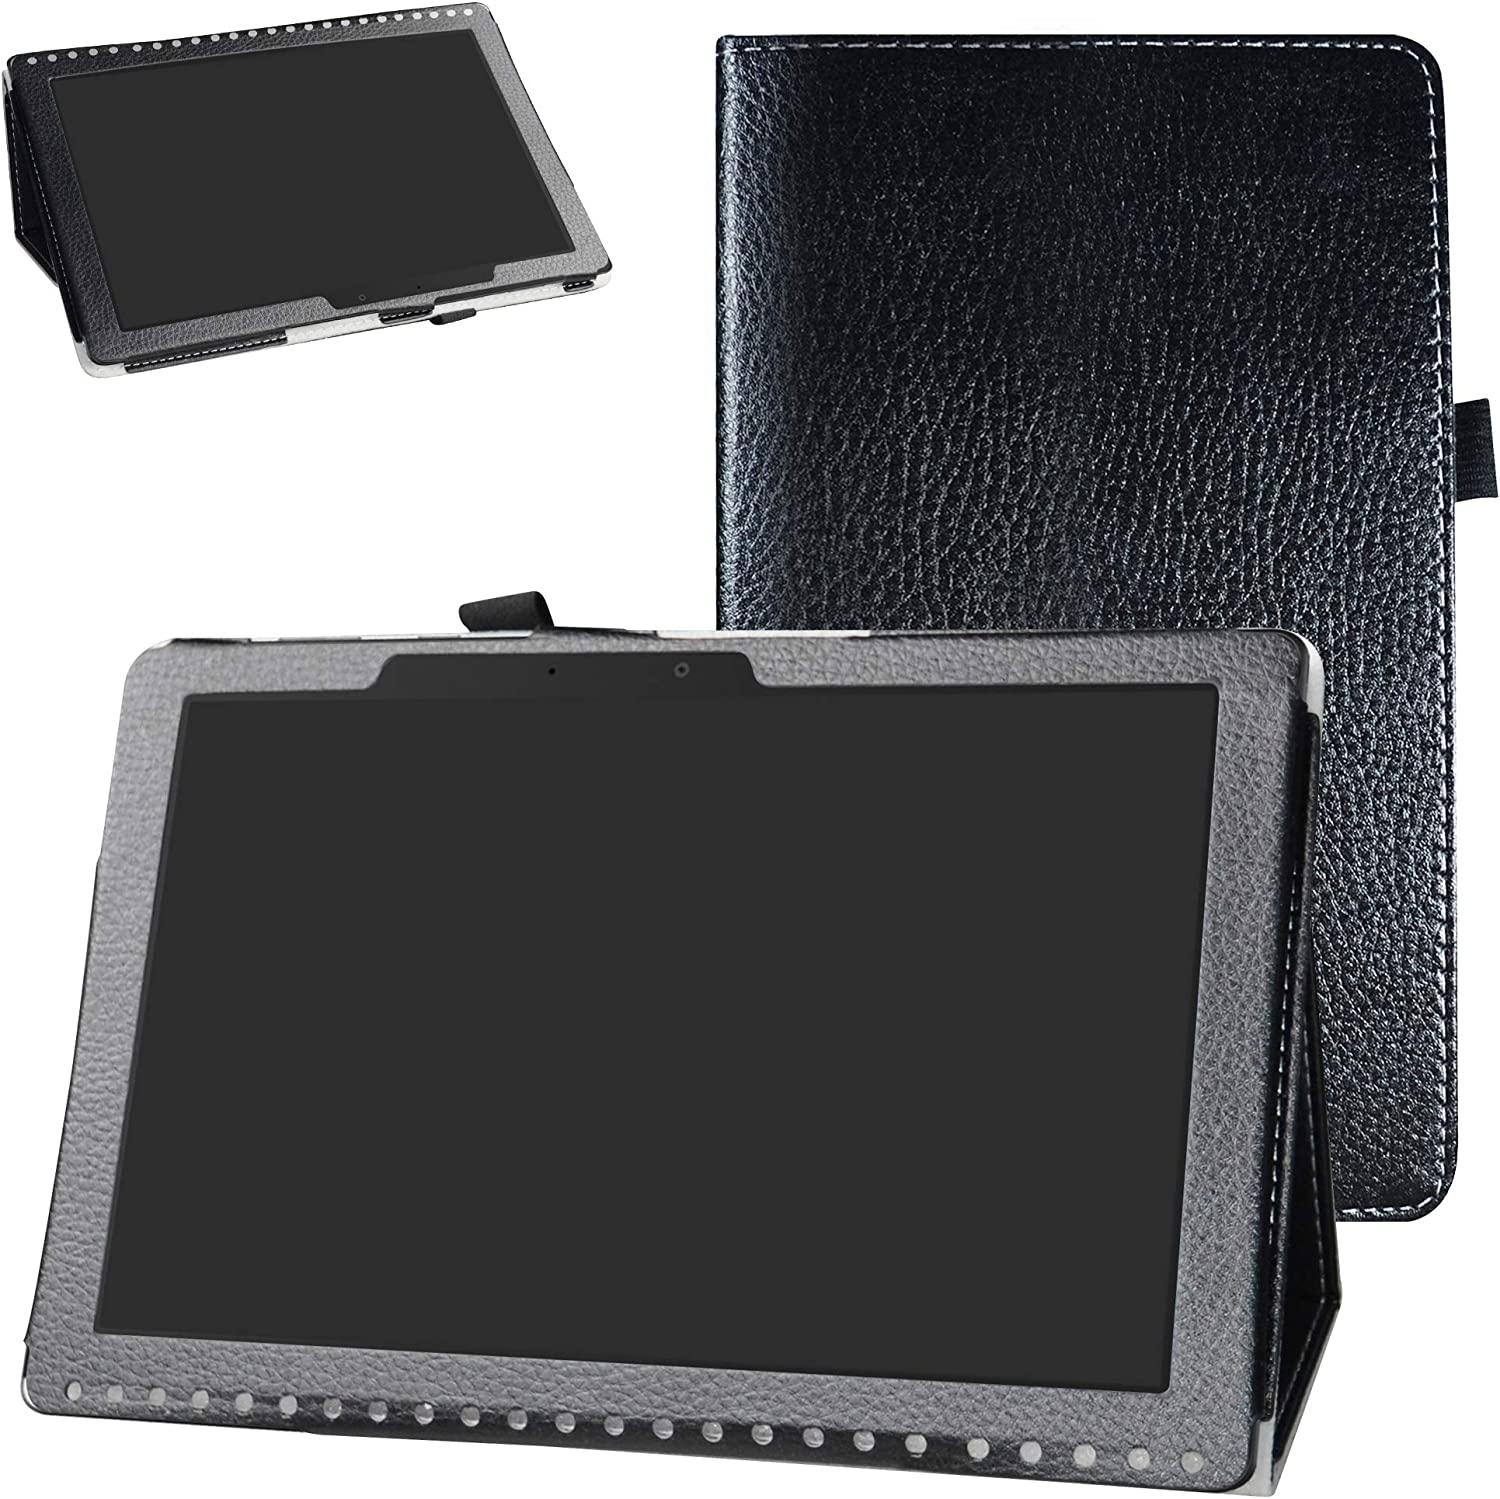 Acer Iconia One 10 B3-A50 Case,Bige PU Leather Folio 2-Folding Stand Cover for Acer Iconia One 10 B3-A50 10.1 inch 2018 Tablet (Not fit Acer A3-A50),Black